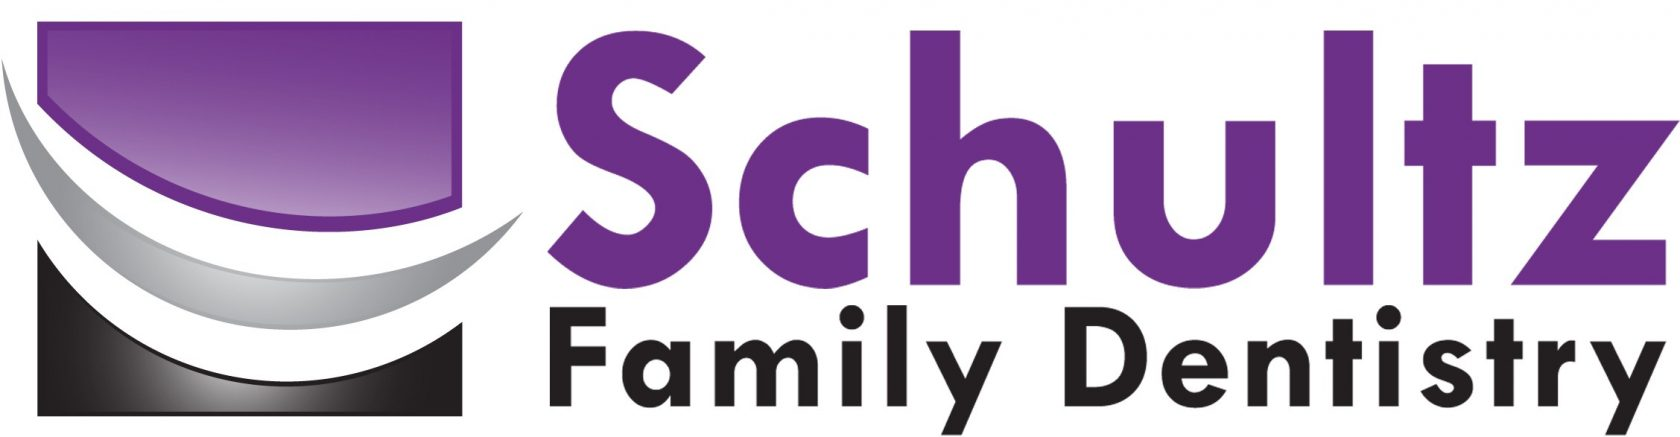 Schultz_Family_Dentistry